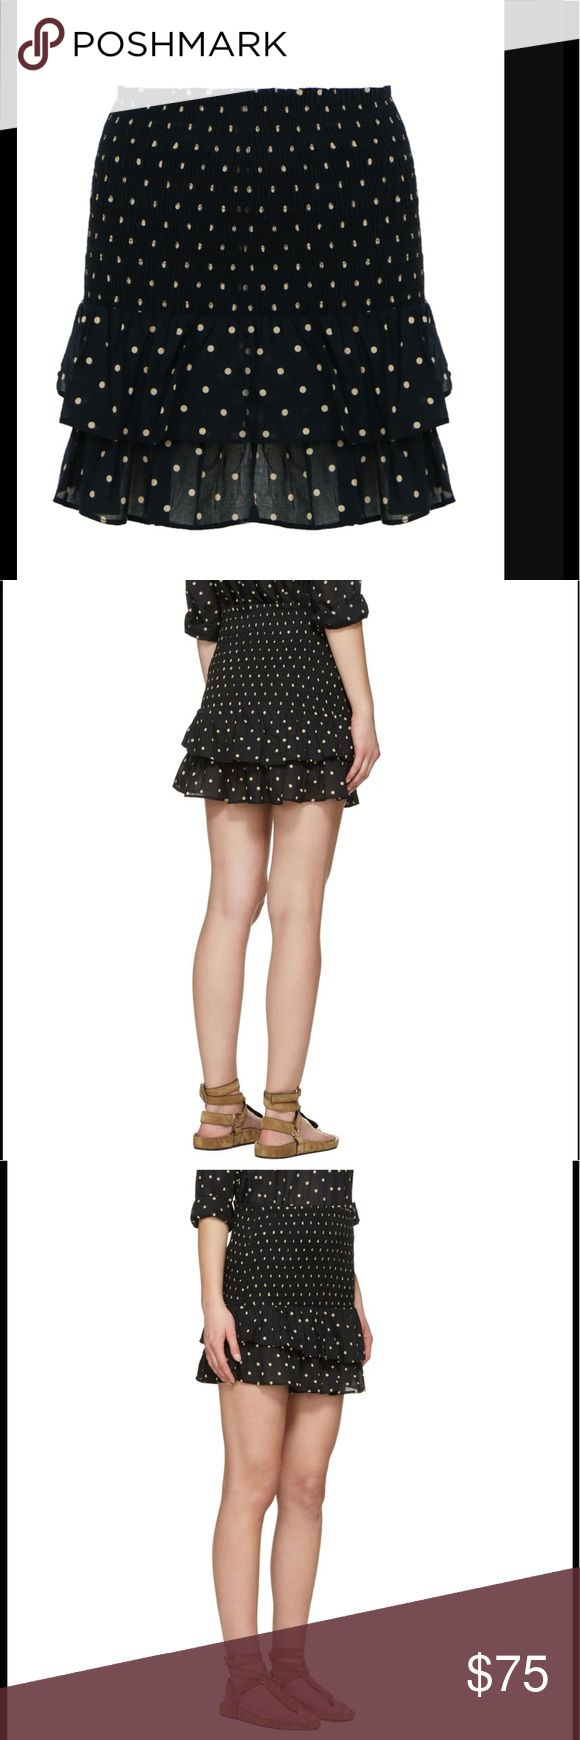 New Isabel Marant Malfos Polka Dot Skirt Isabel Marant Étoile's black and beige polka-dot print cotton Malfos skirt is a flirty and fun daywear piece. It's shaped with a wide, elasticated smocked waistband that perfectly holds your shape, and falls into two ruffled tiers that float at the tops of the thighs. Tuck in a slender T-shirt, or let the frothy hem peek from beneath a loose shirt. COMPOSITION: 100% cotton. French size 38 equal to US size 4/6 (more on the 4 side) Isabel Marant Skirts…